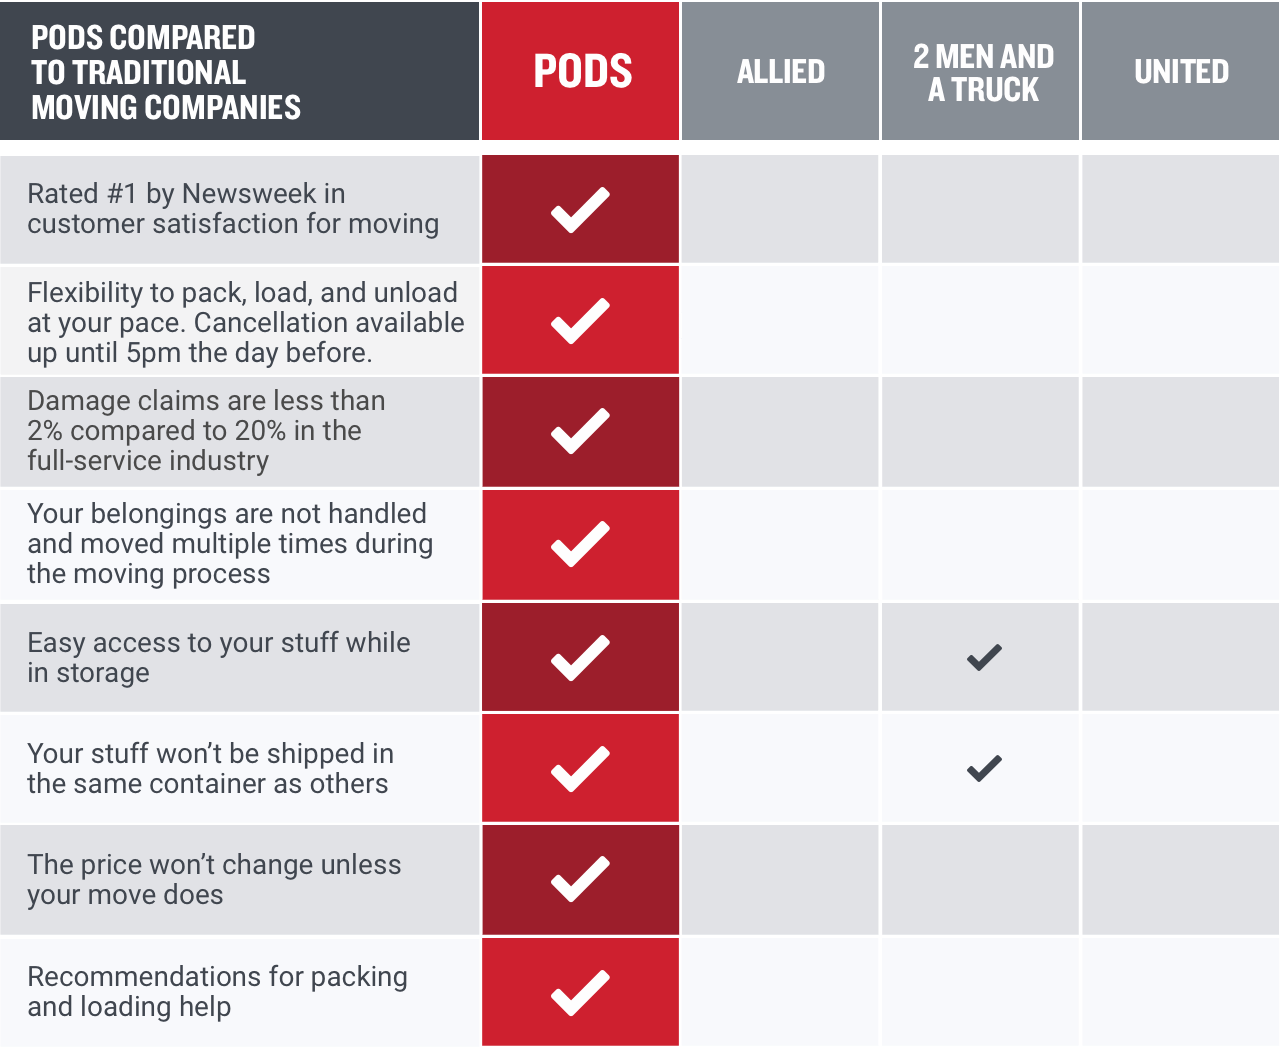 PODS vs traditional moving companies